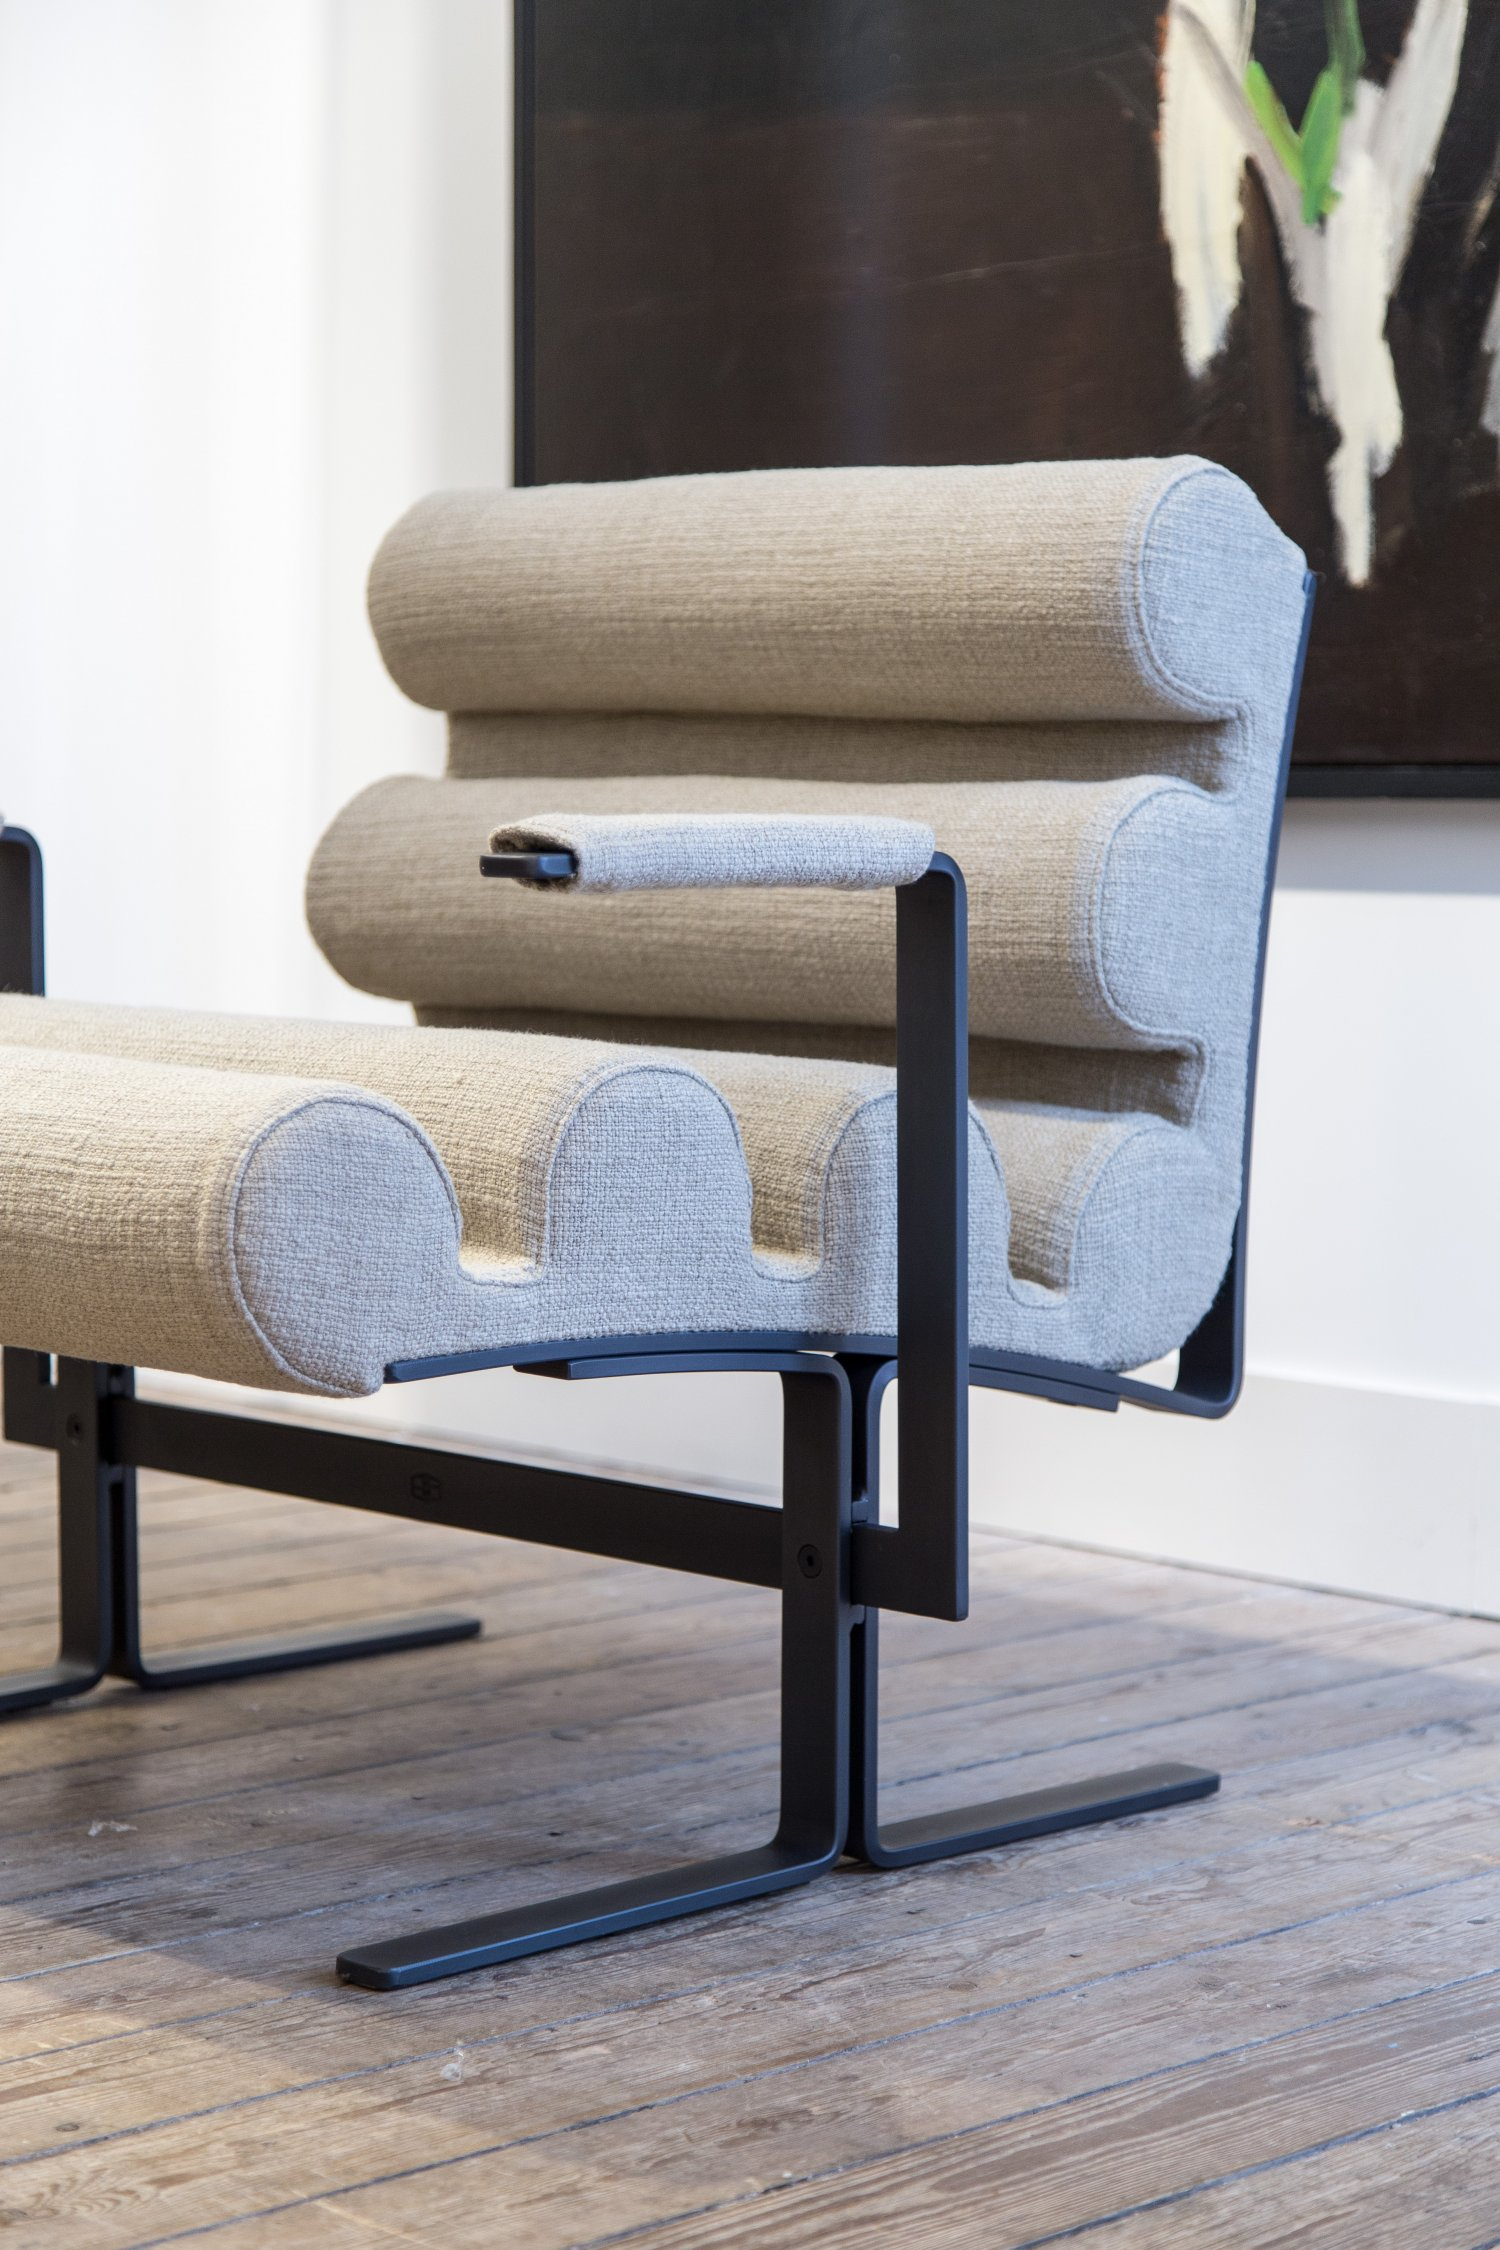 'Roll' chair by Joe Colombo for Sormani